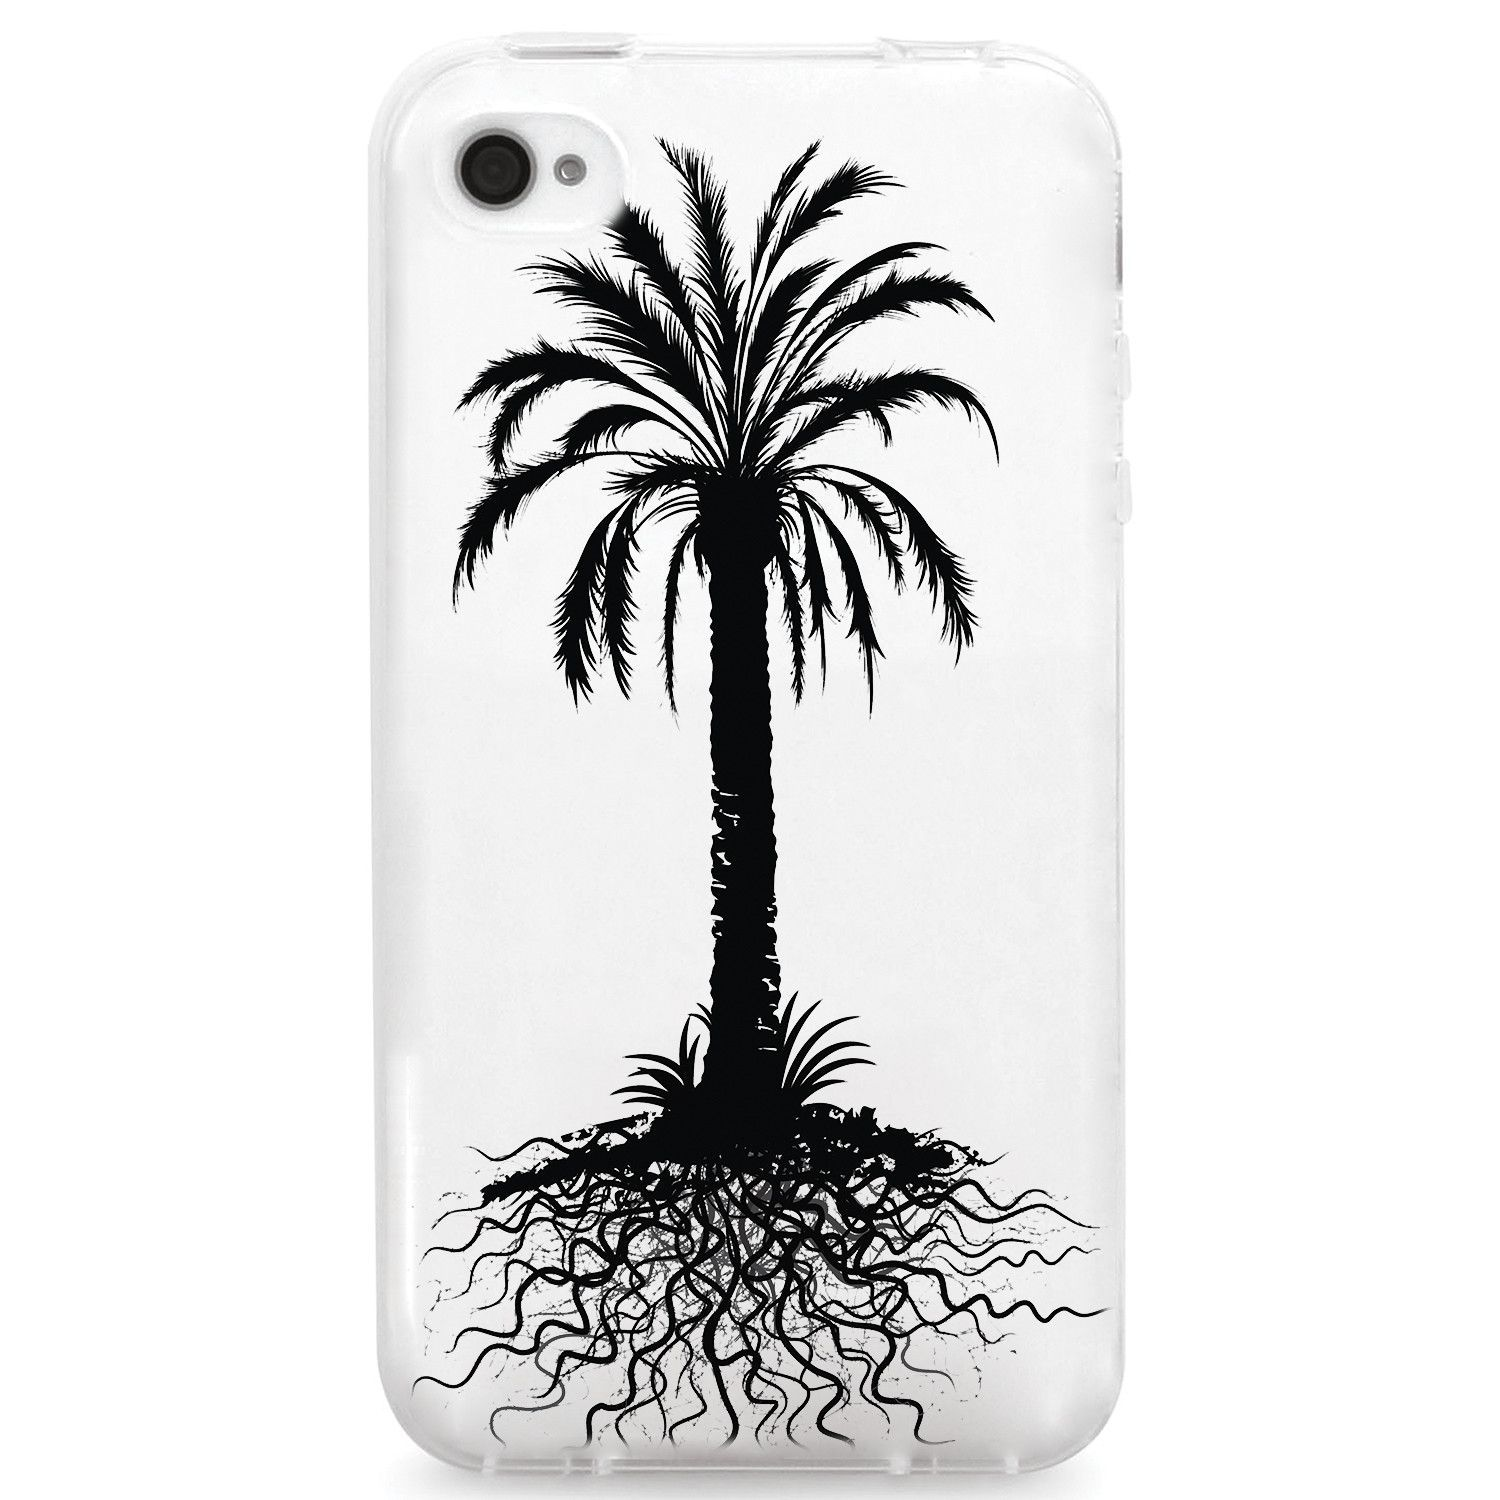 1500x1500 Floral Summer Palm Tree Roots Silhouette Products